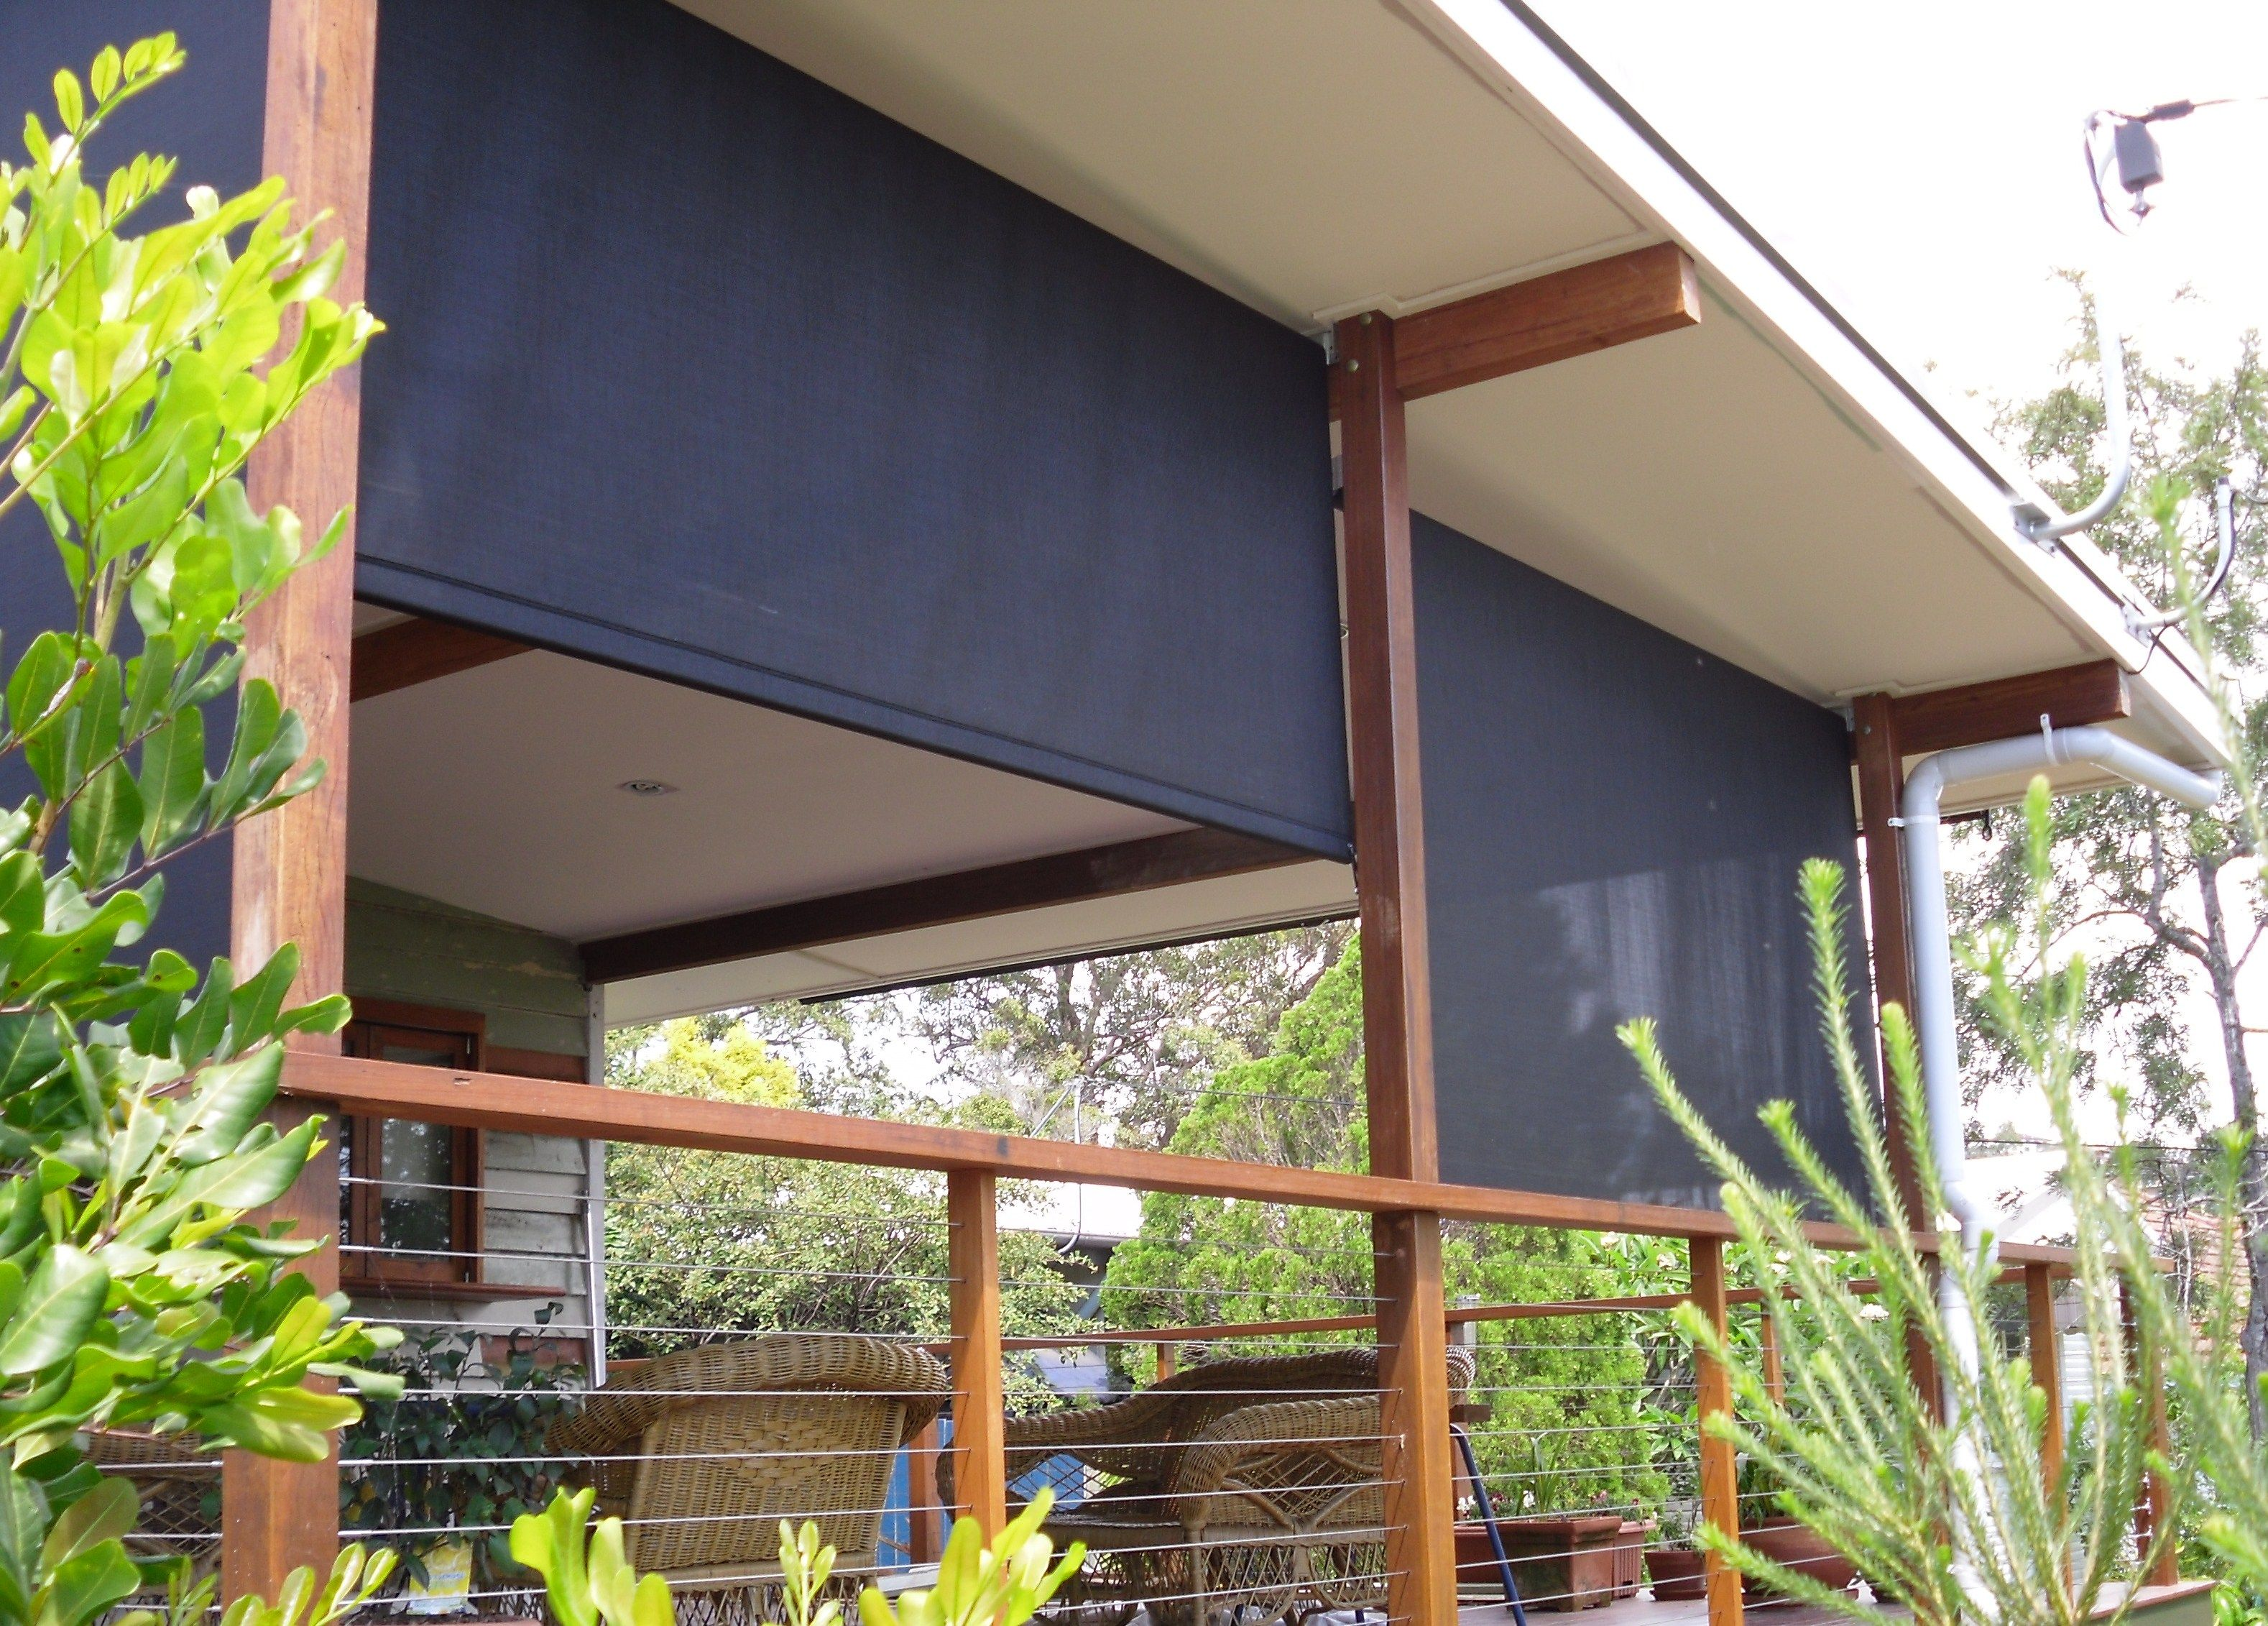 Add style and privacy with custom made blinds in this